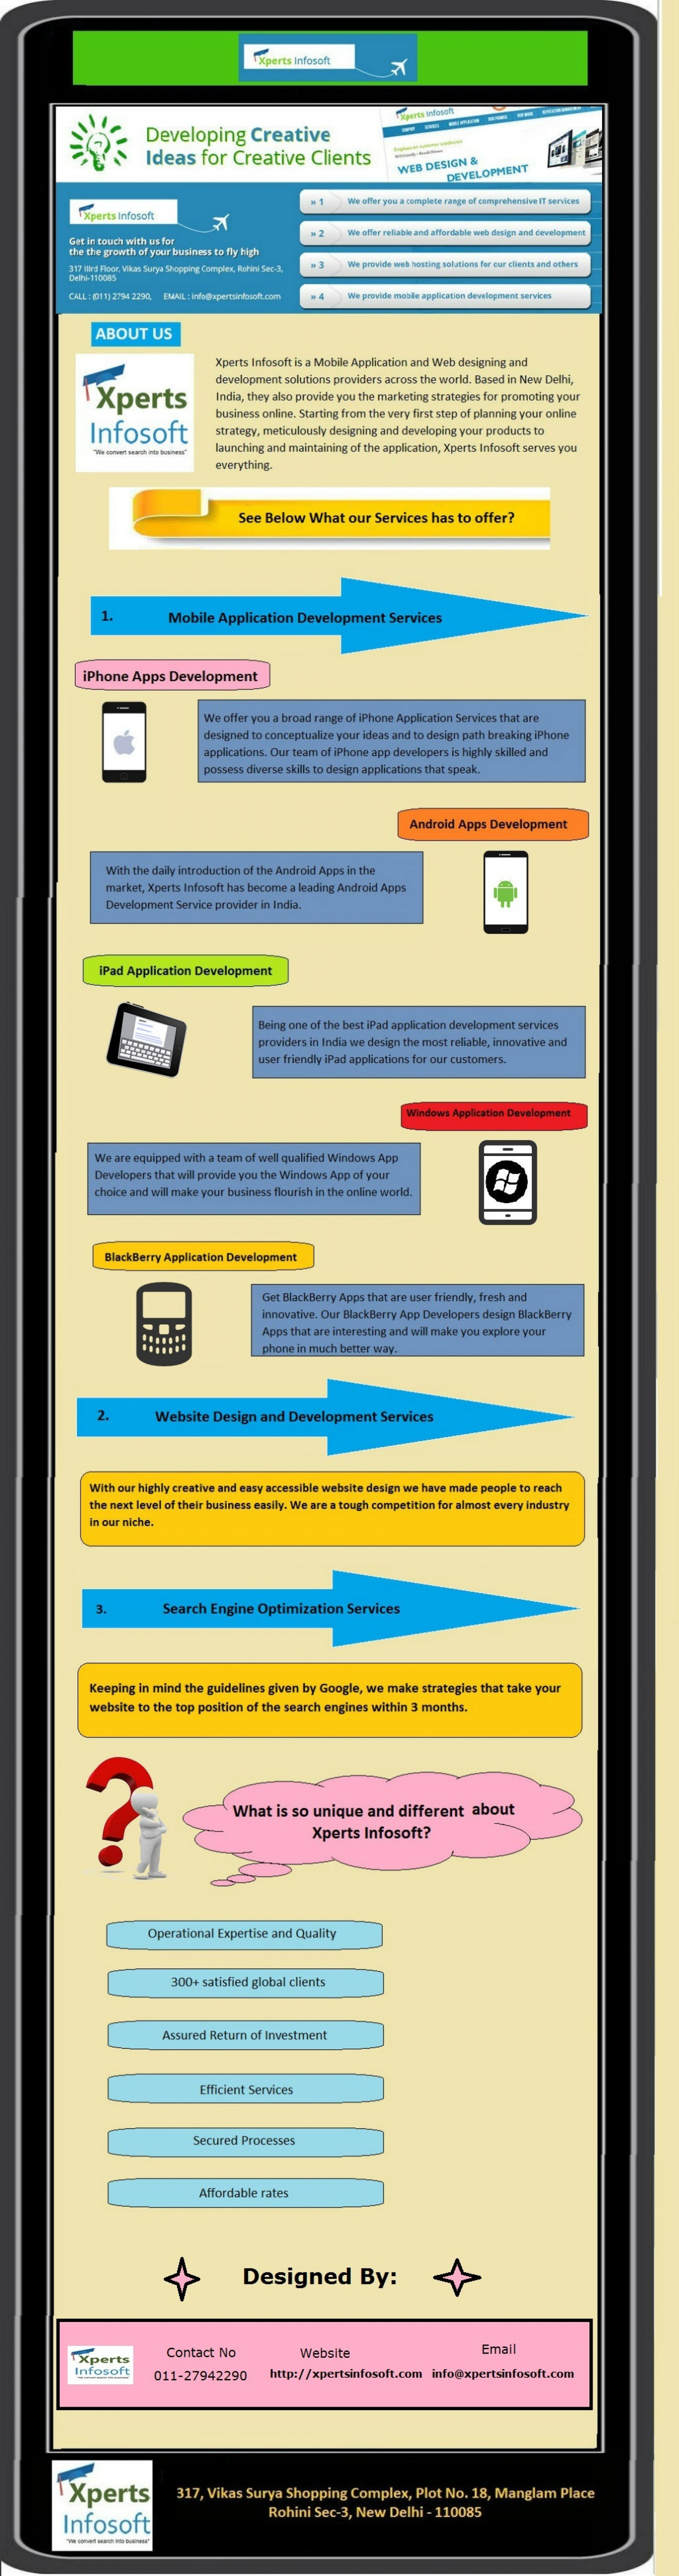 Services to enjoy with Xperts Infosoft Infographic